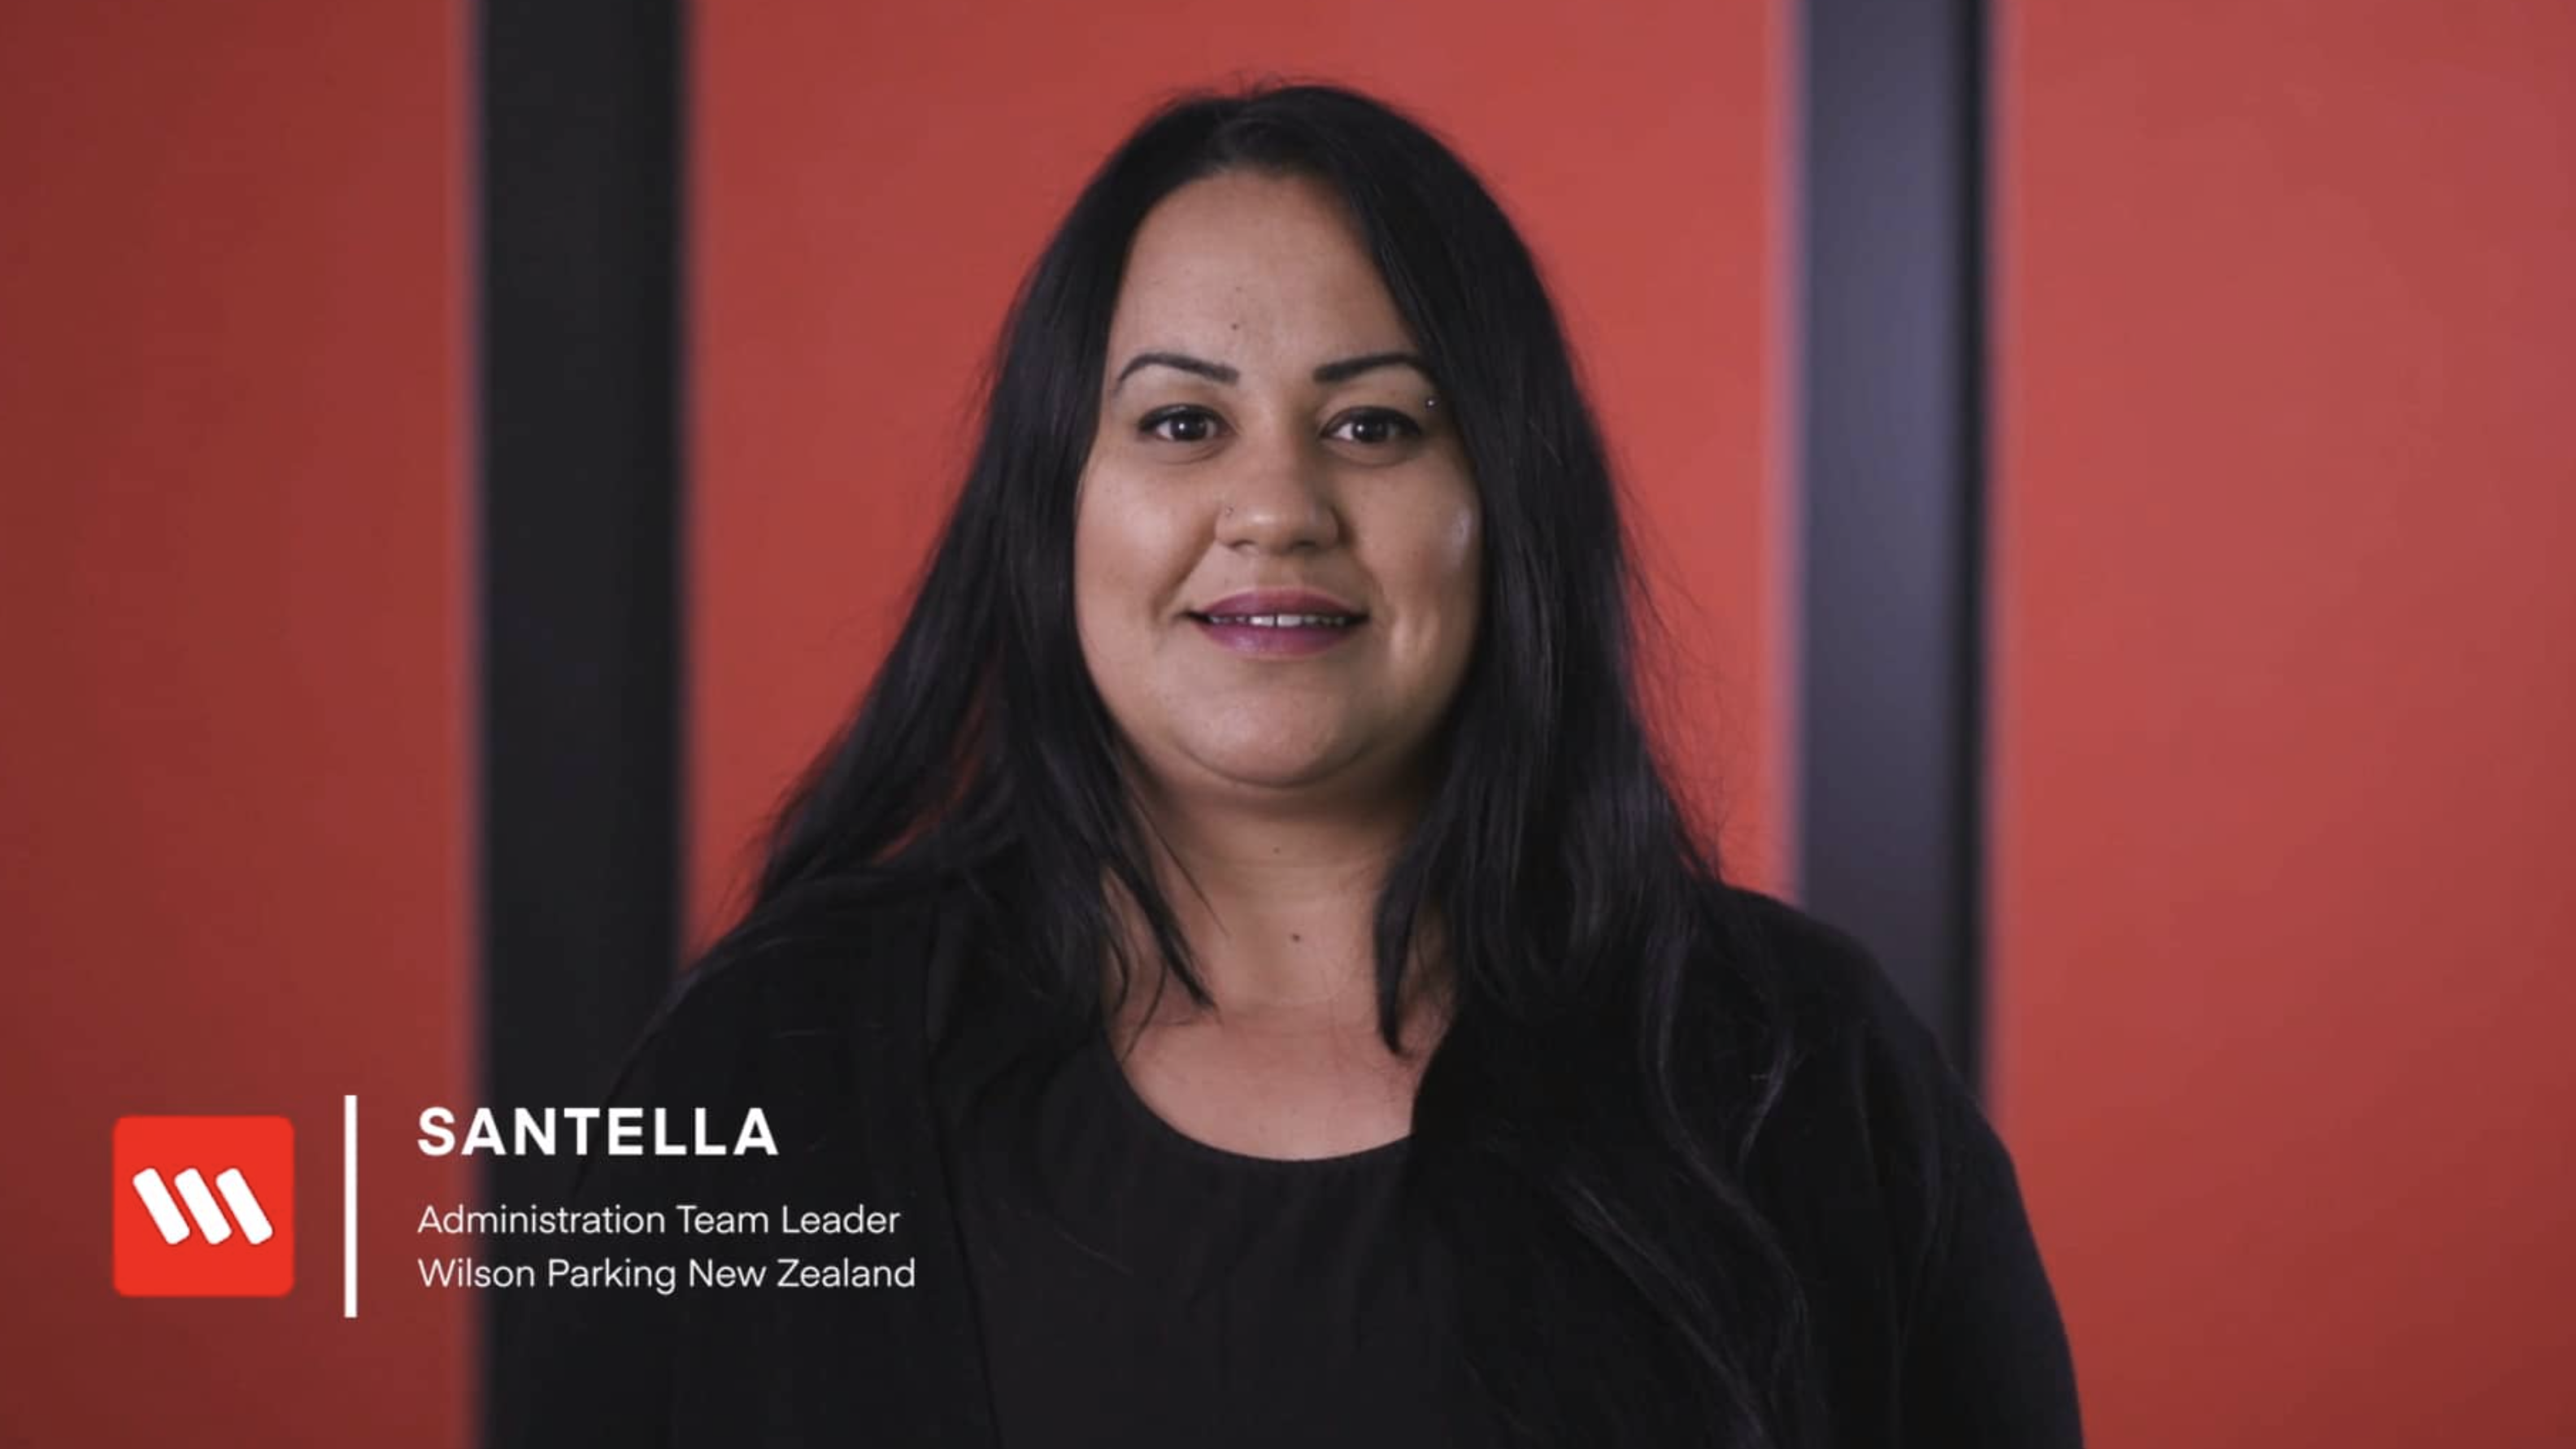 Our People | Santella